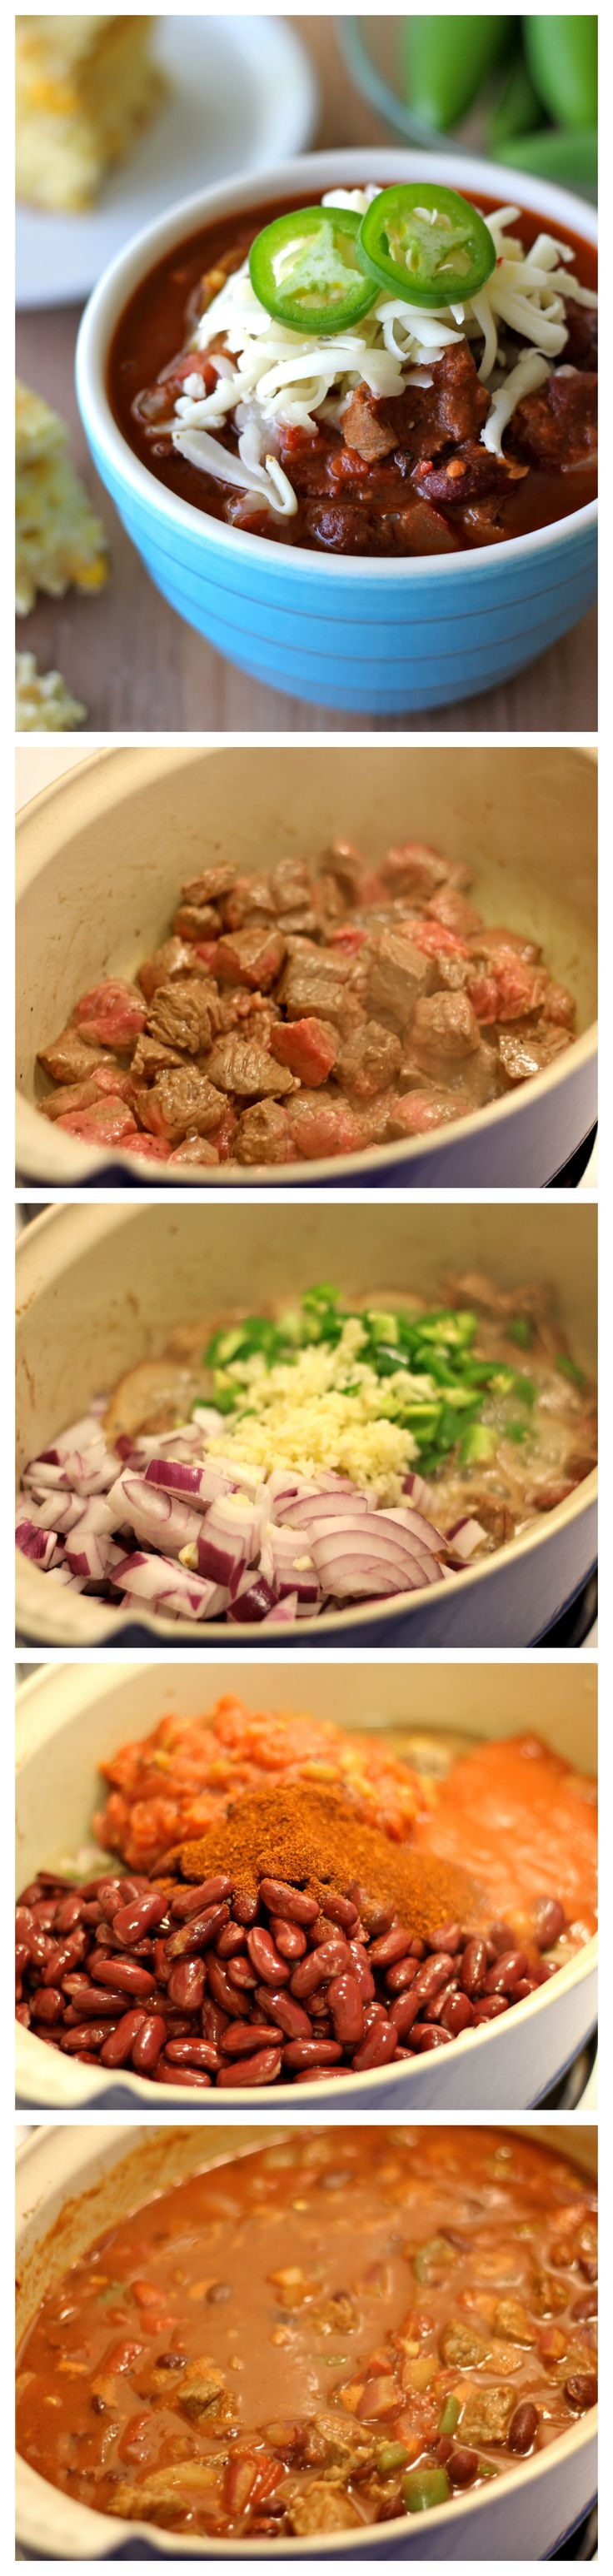 Steak Chili - A cozy, comforting chili made with the most unbelievably tender pieces of steak!